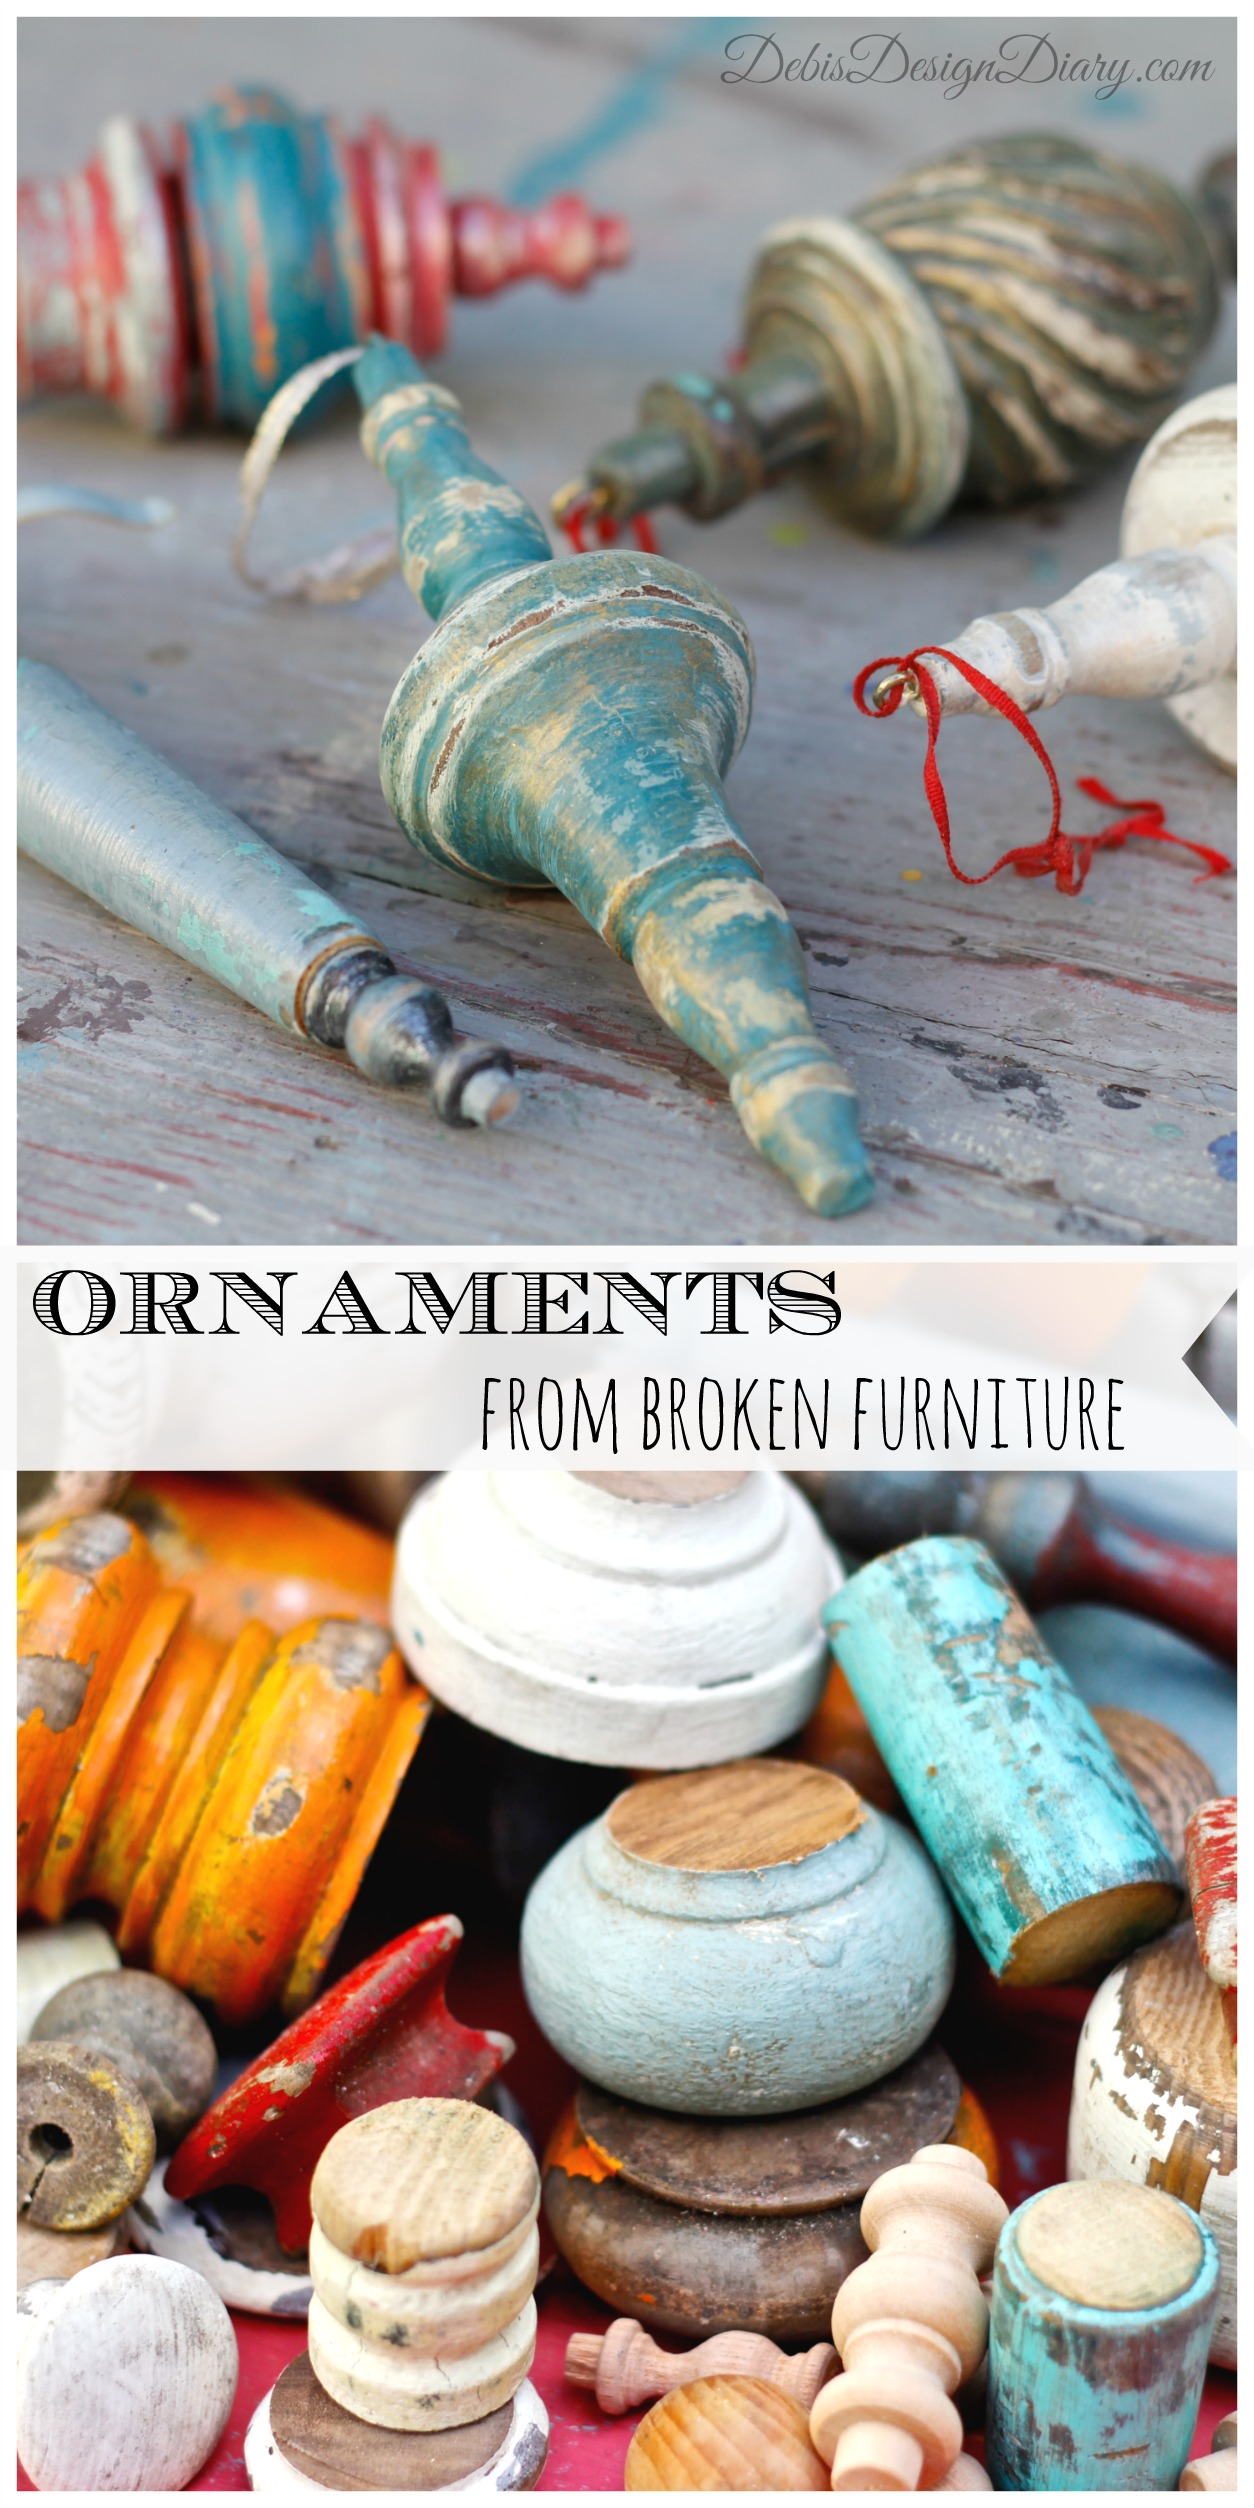 How to make ornaments from broken furniture